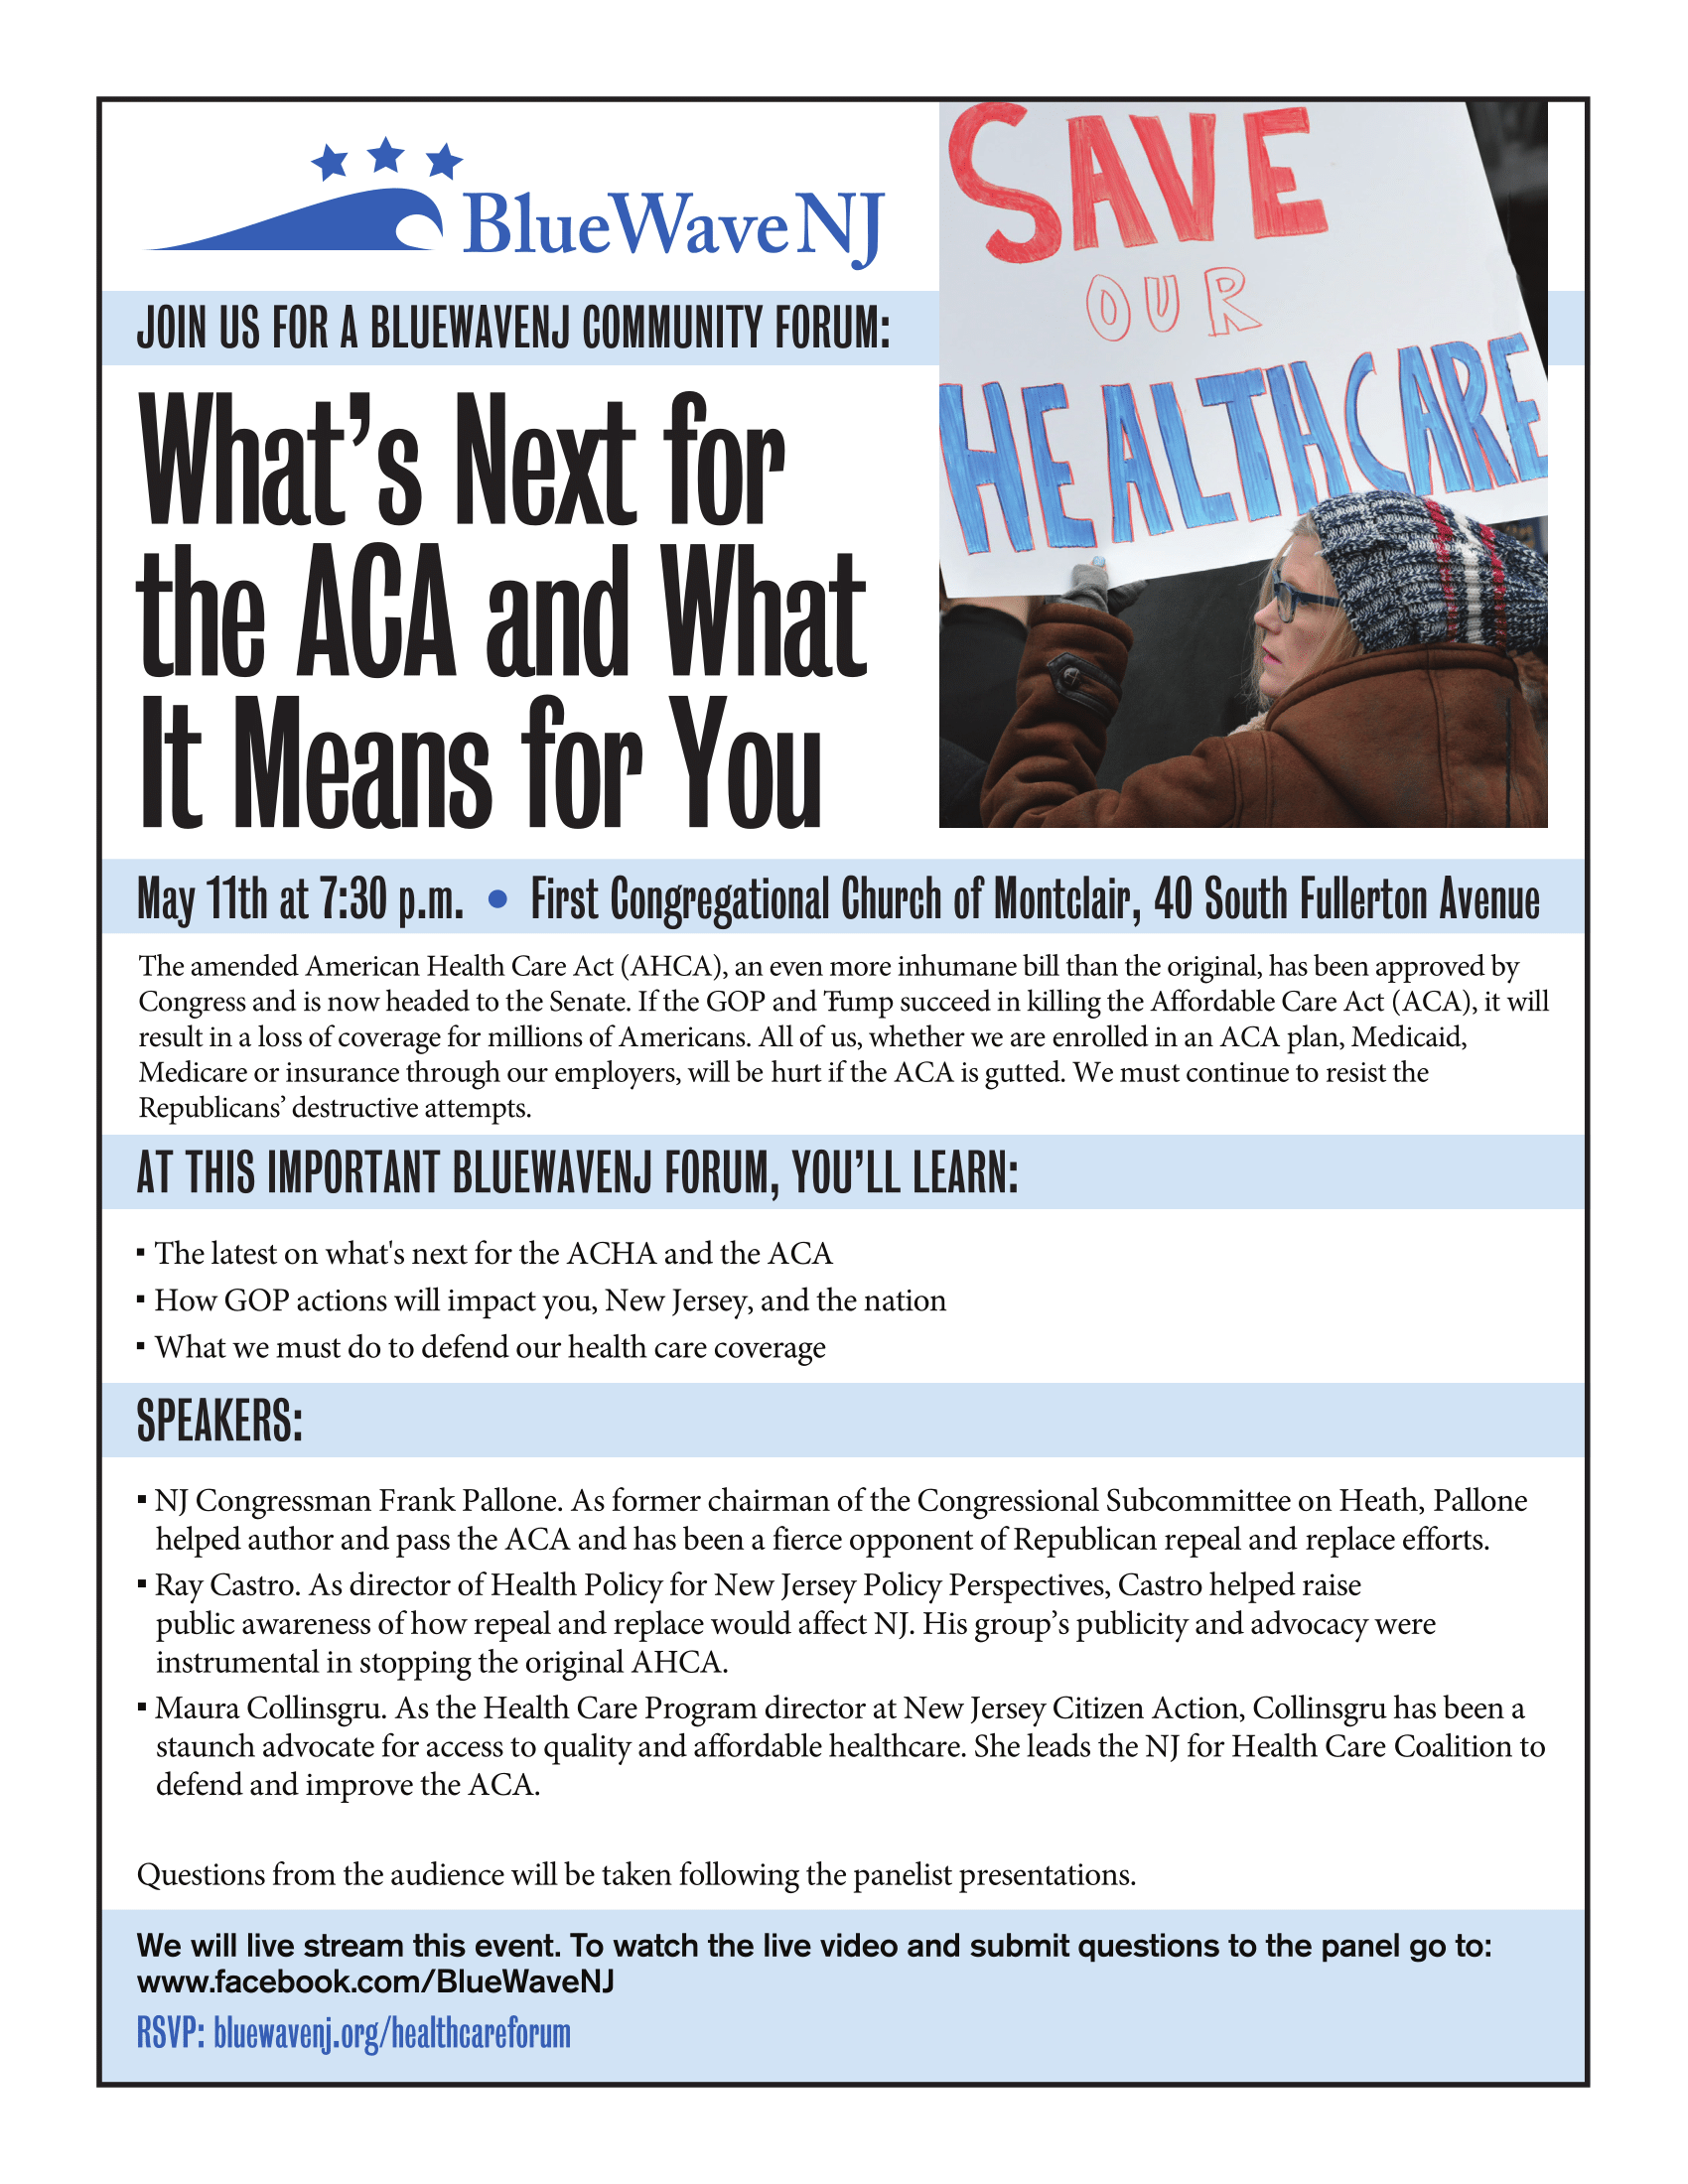 BlueWaveNJHealthcareFlyer-2017_v3-1.png